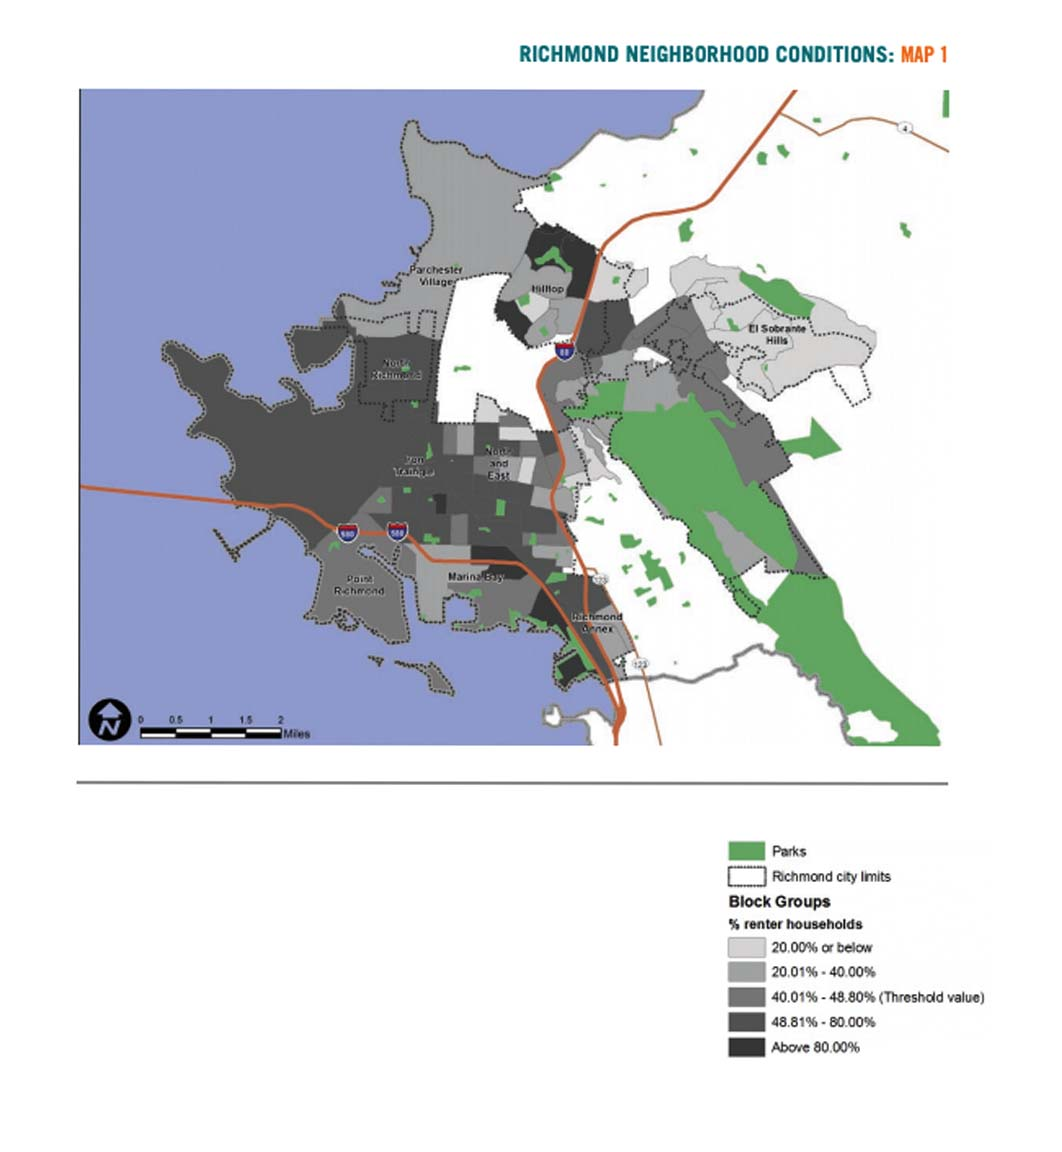 Map 1 displays Richmond neighborhood conditions based on renter households